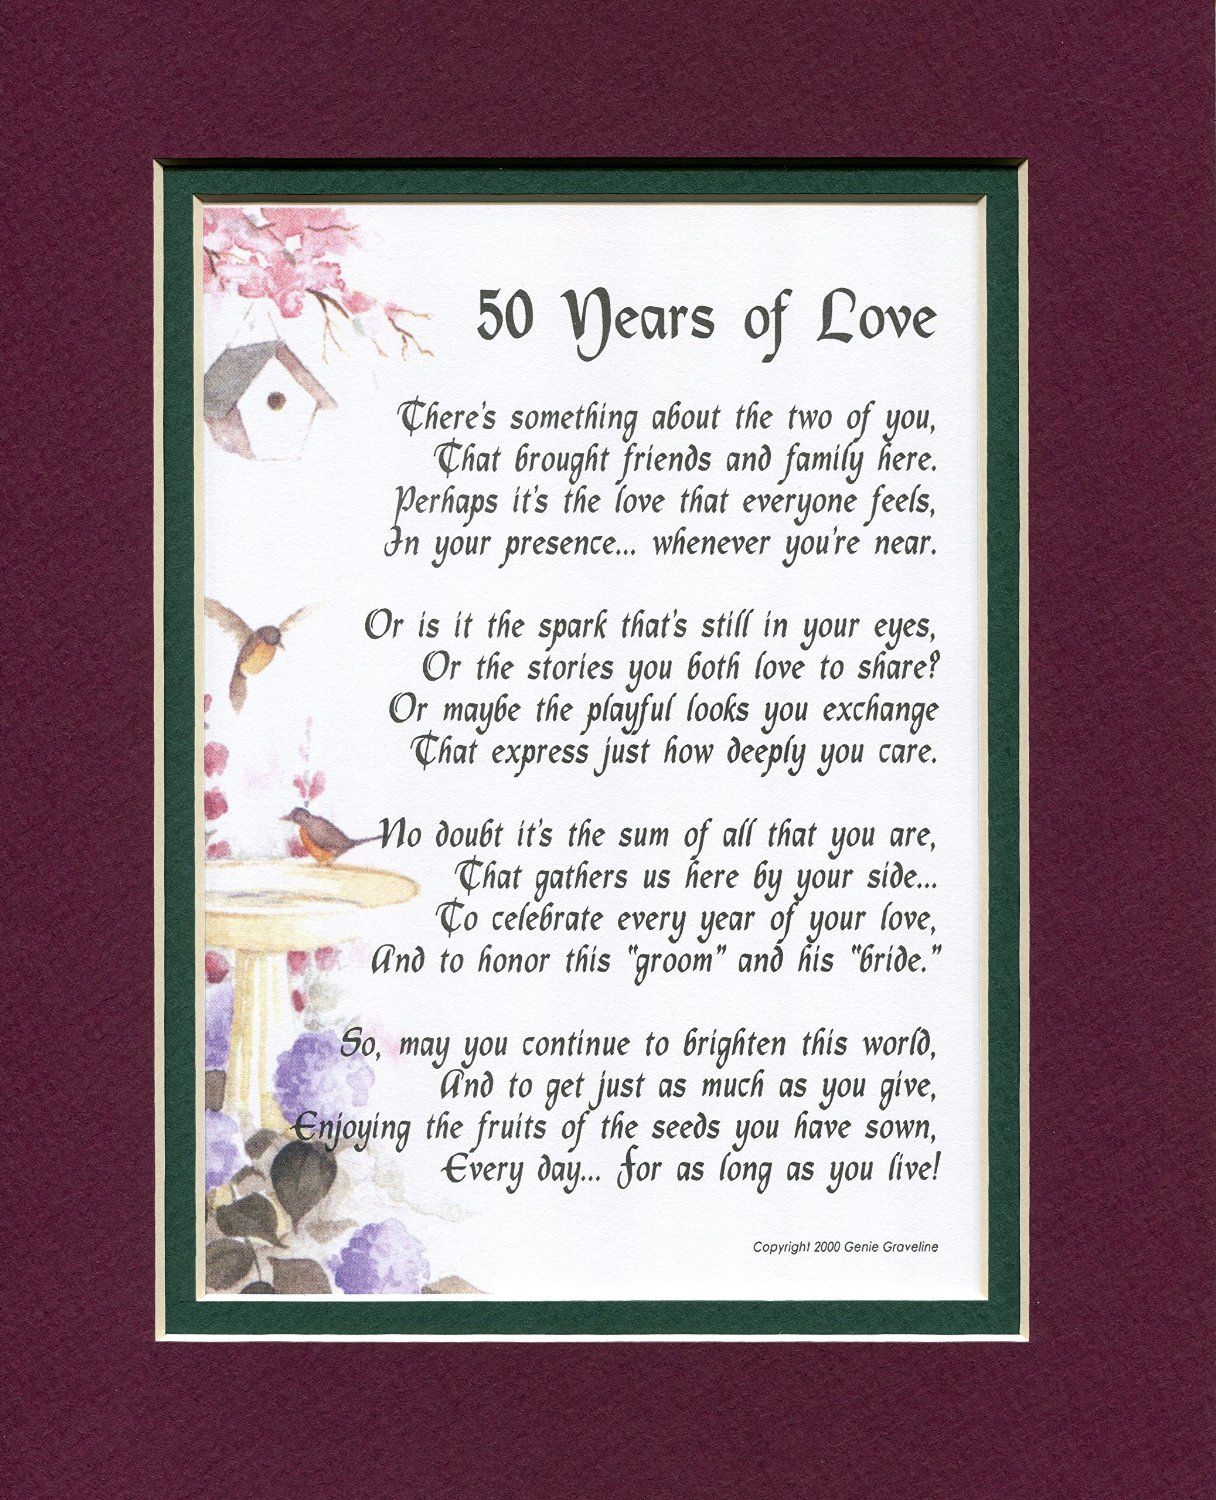 50th Wedding Anniversary Poems: 50 Years Of Love, #119, Touching Poem. A Gift